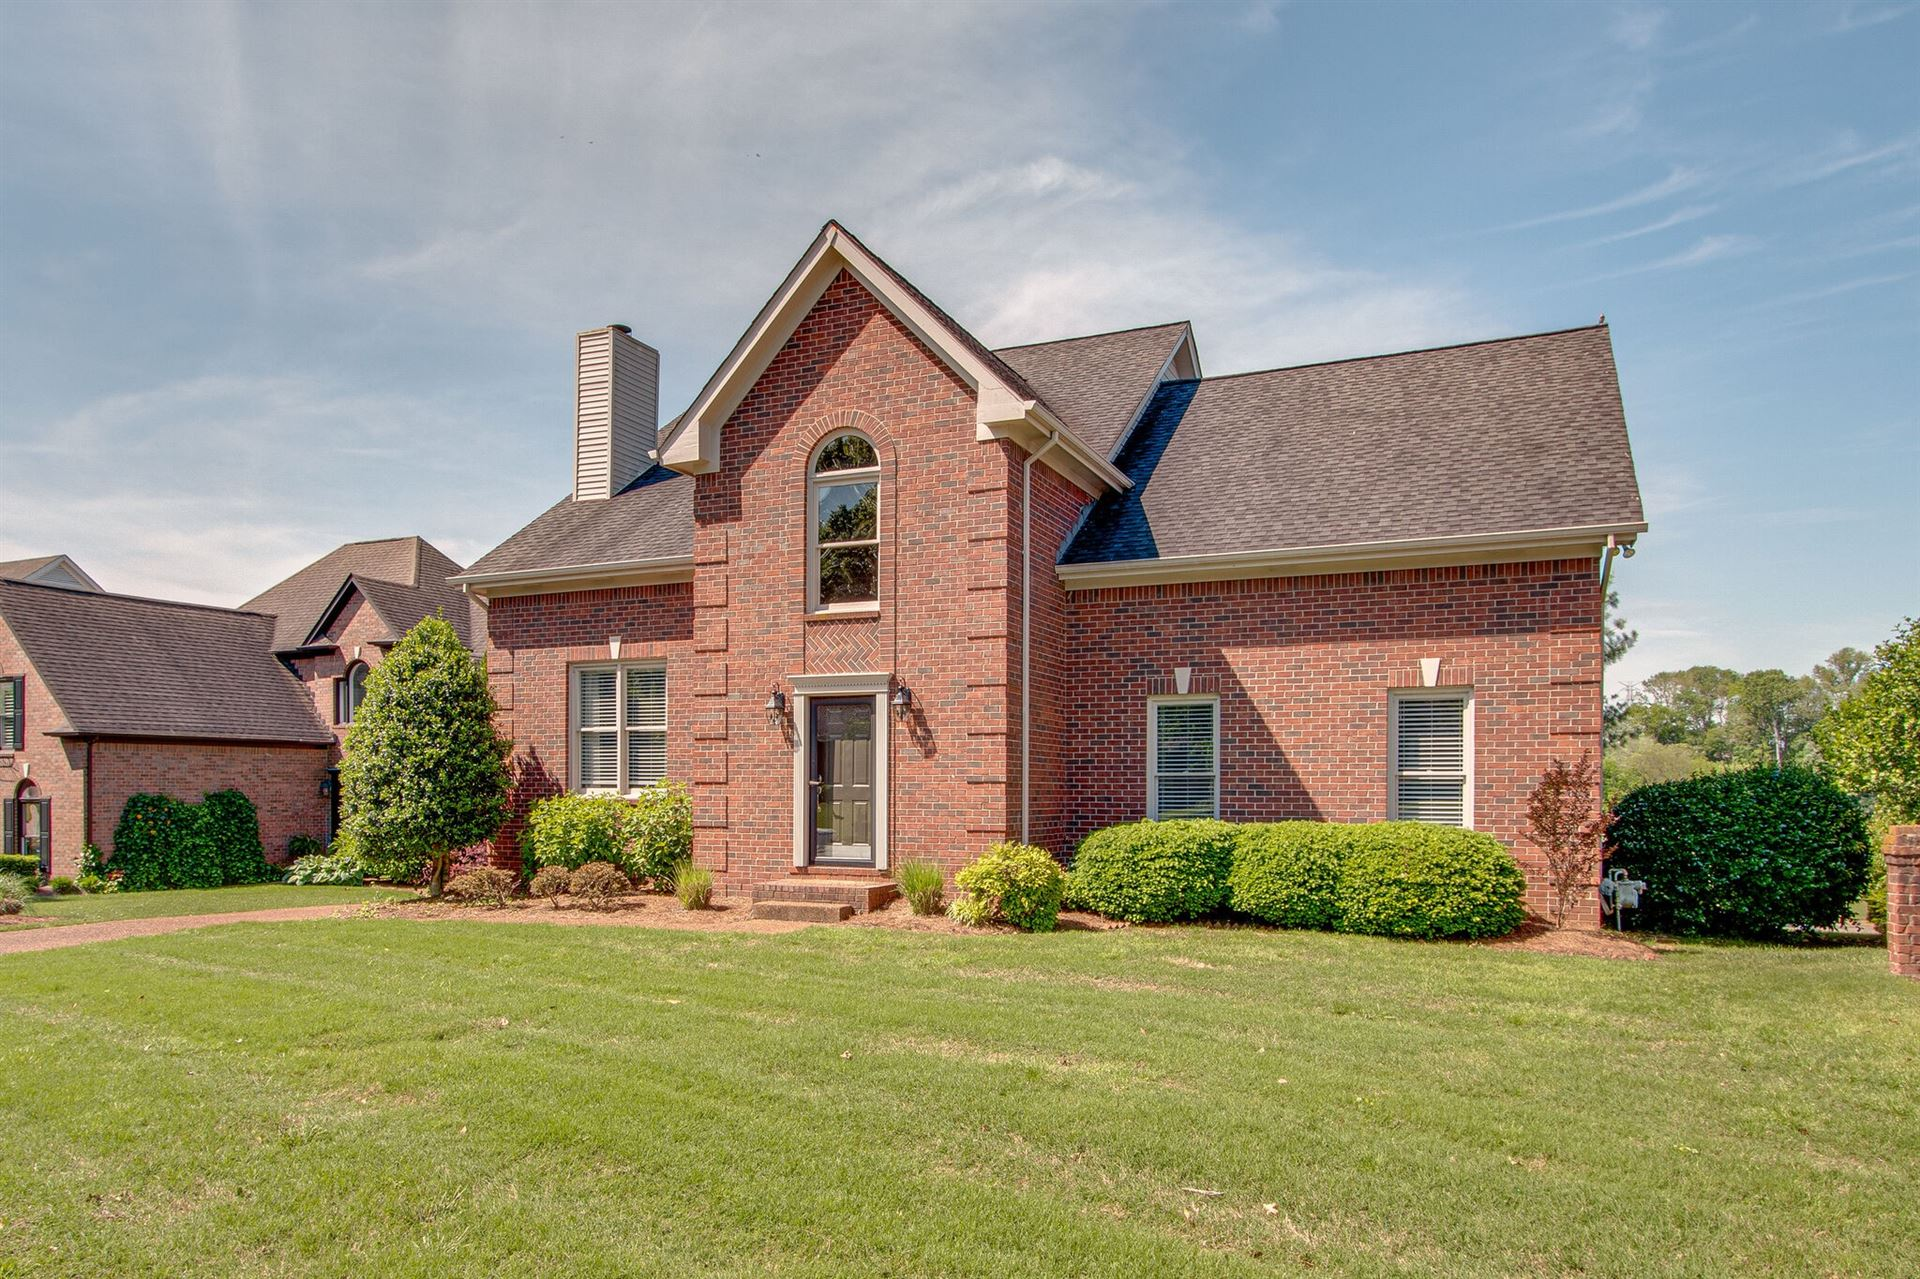 Photo of 922 Riverview Dr, Franklin, TN 37064 (MLS # 2253579)